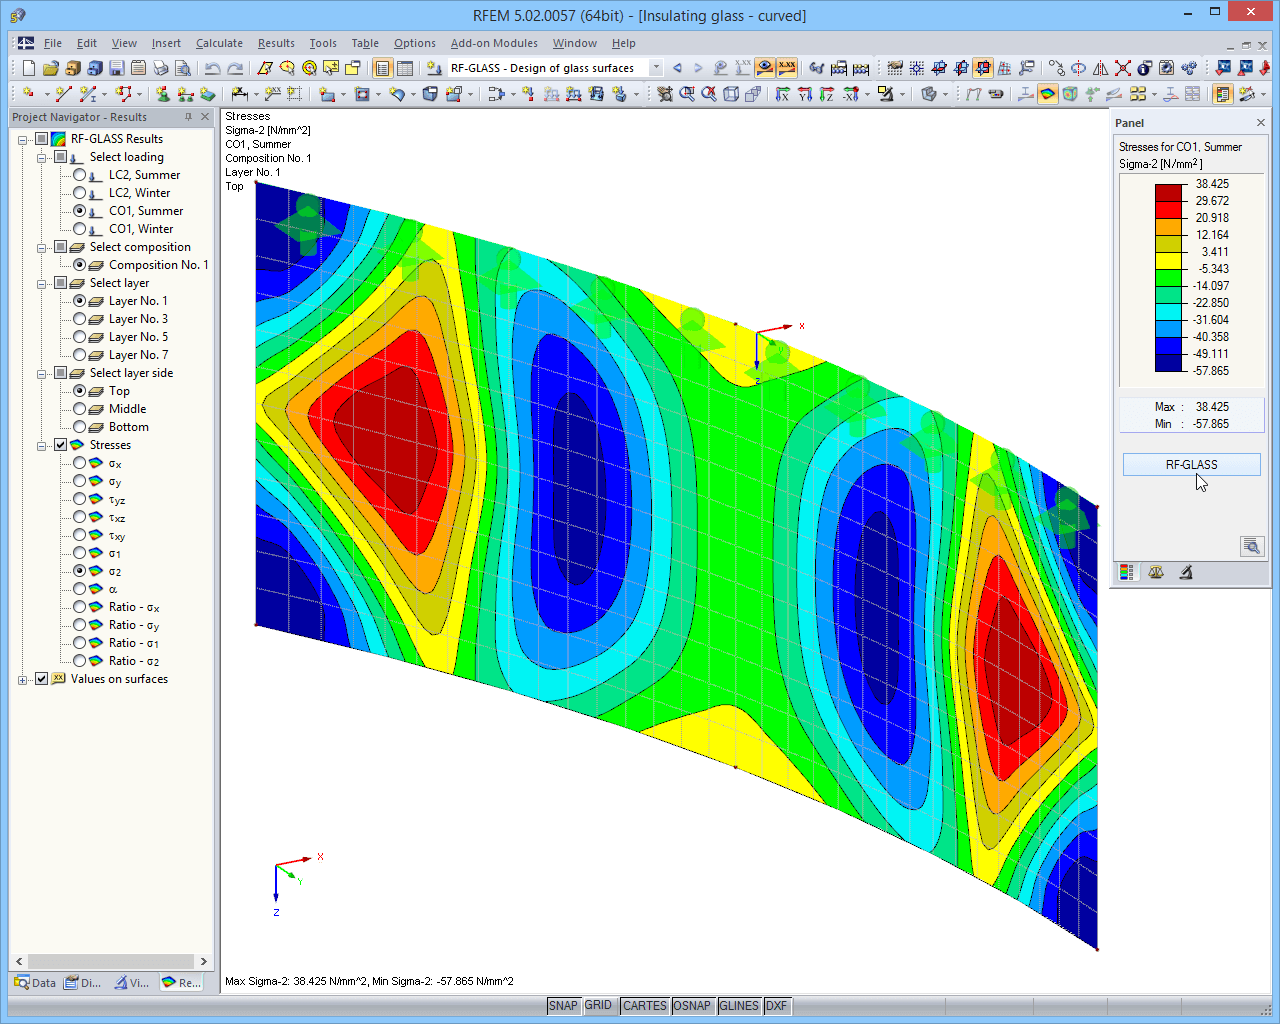 Results in RFEM graphic - stresses